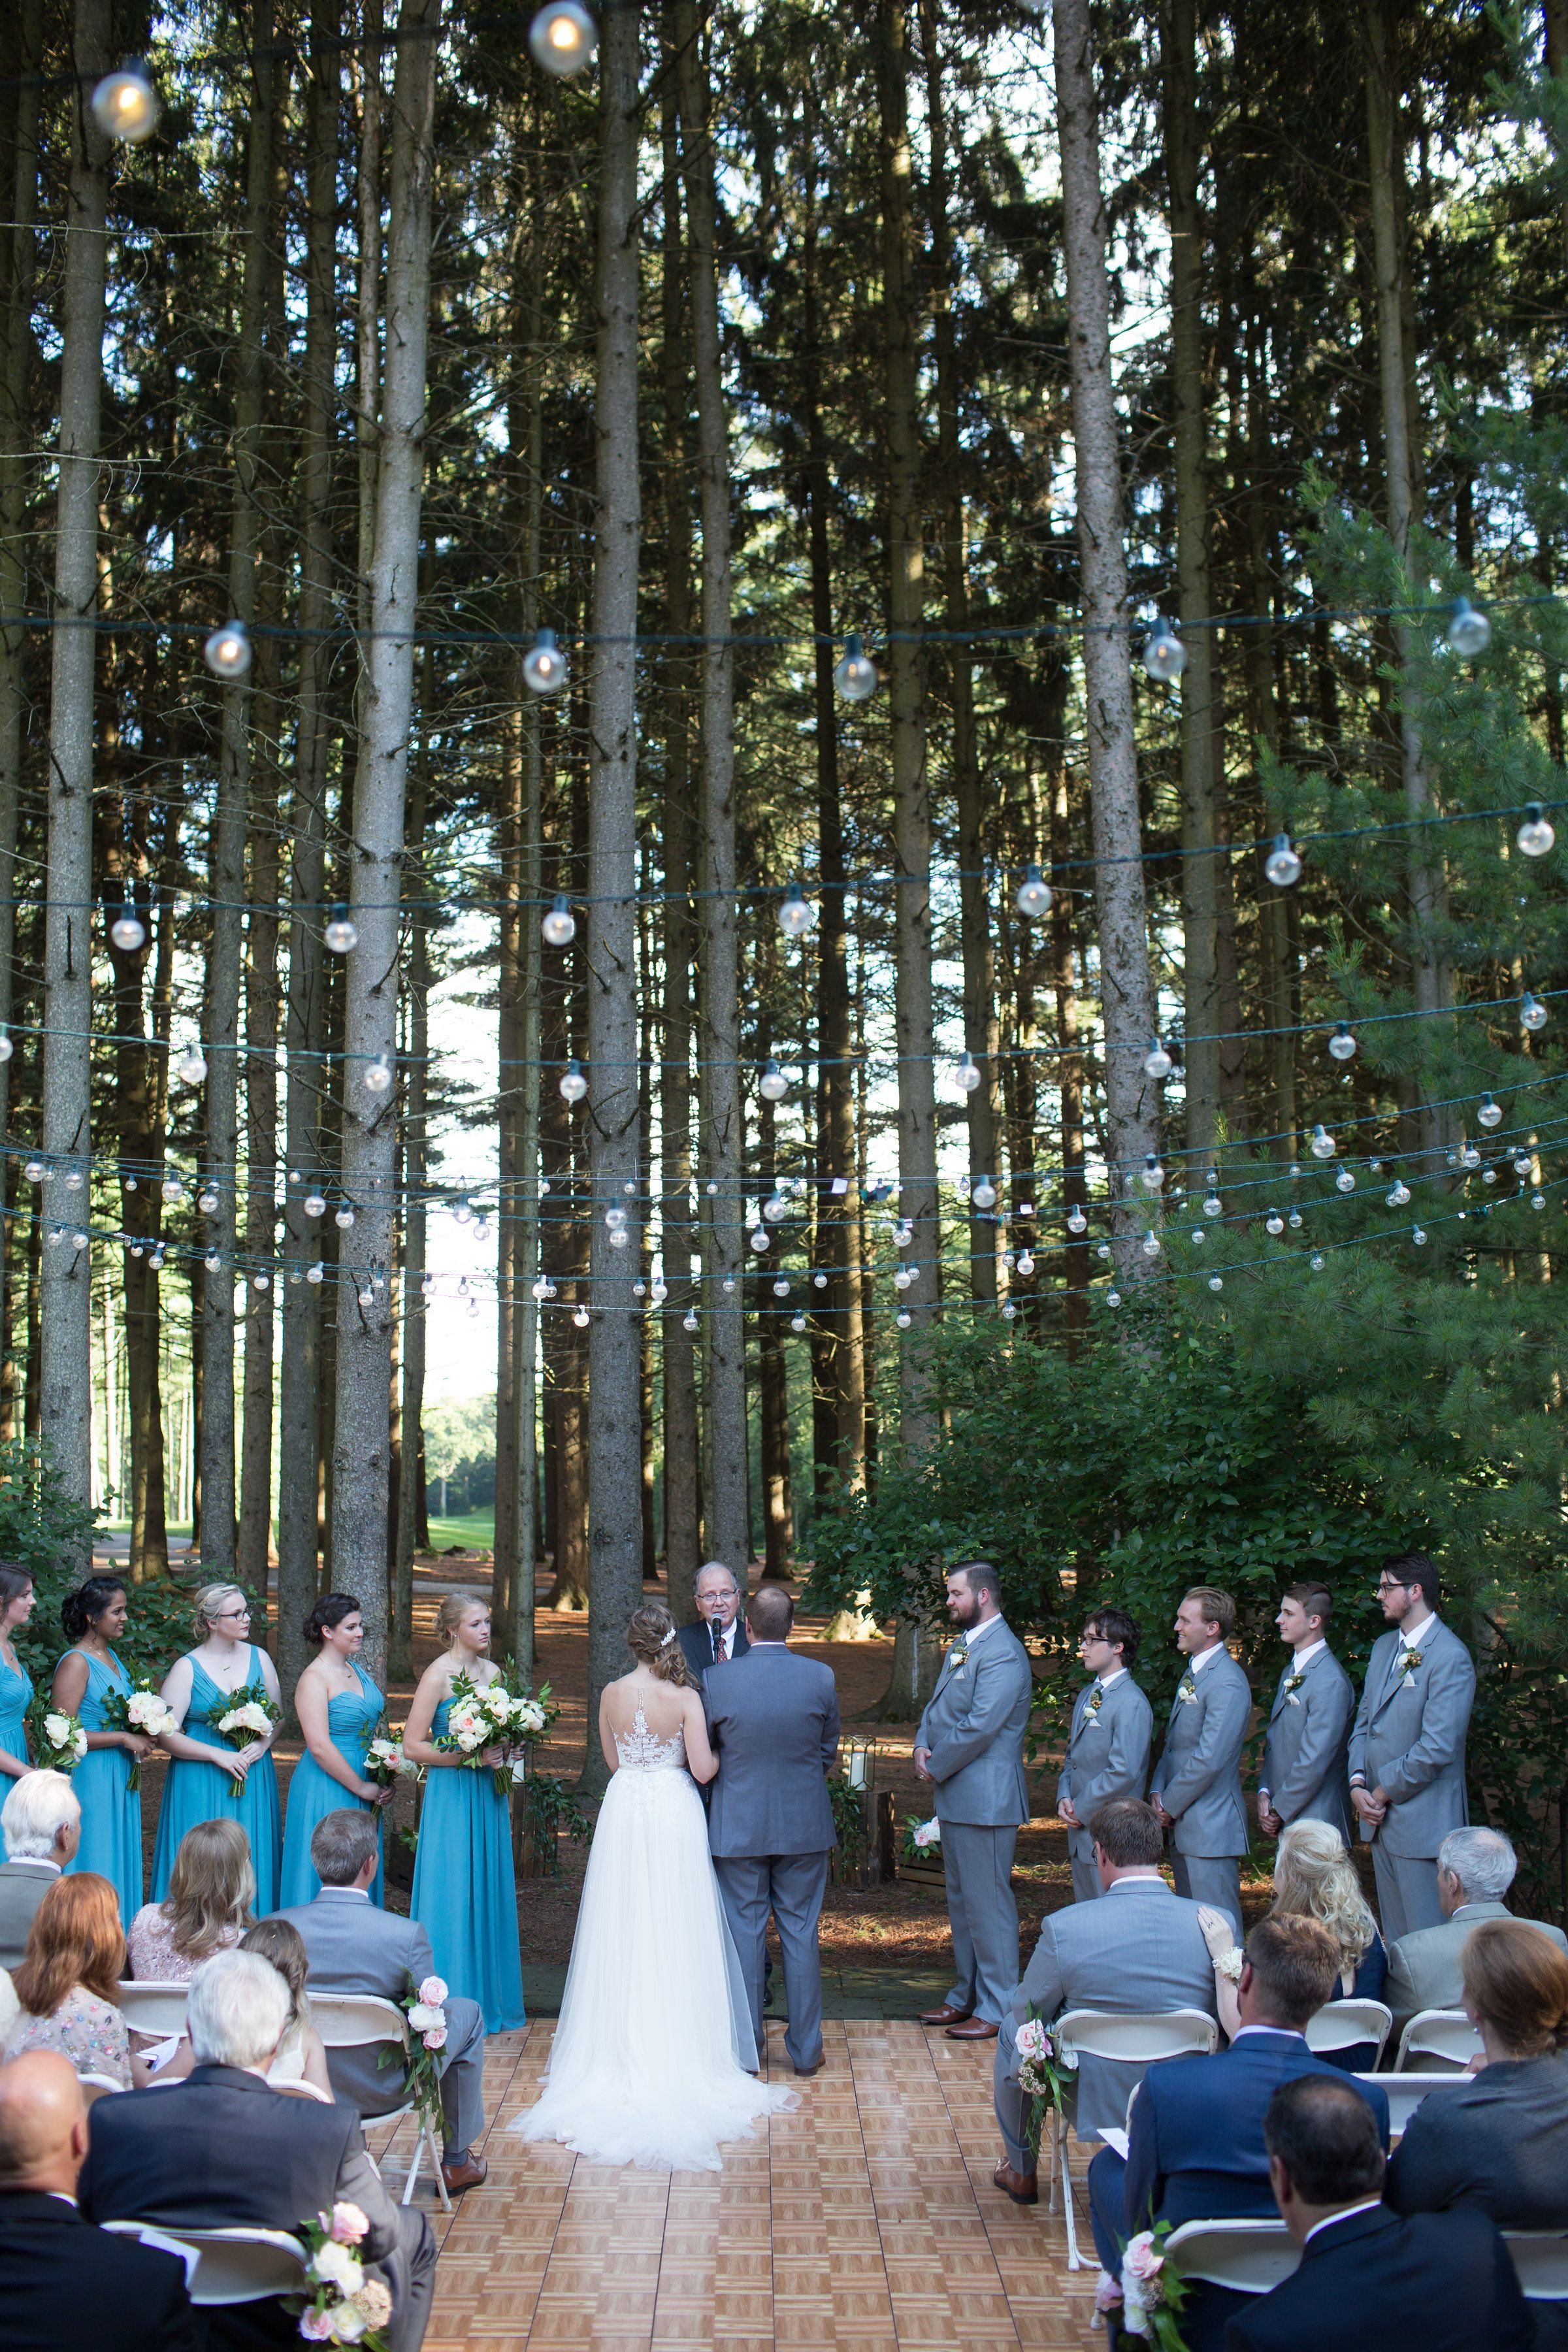 Gorgeous July Wedding Ceremony Underneath The Pine Trees At Shepherd's Hollow Golf Club Venue And Reception Space In Clarkston Michigan: Cu New York Wedding Venue At Reisefeber.org